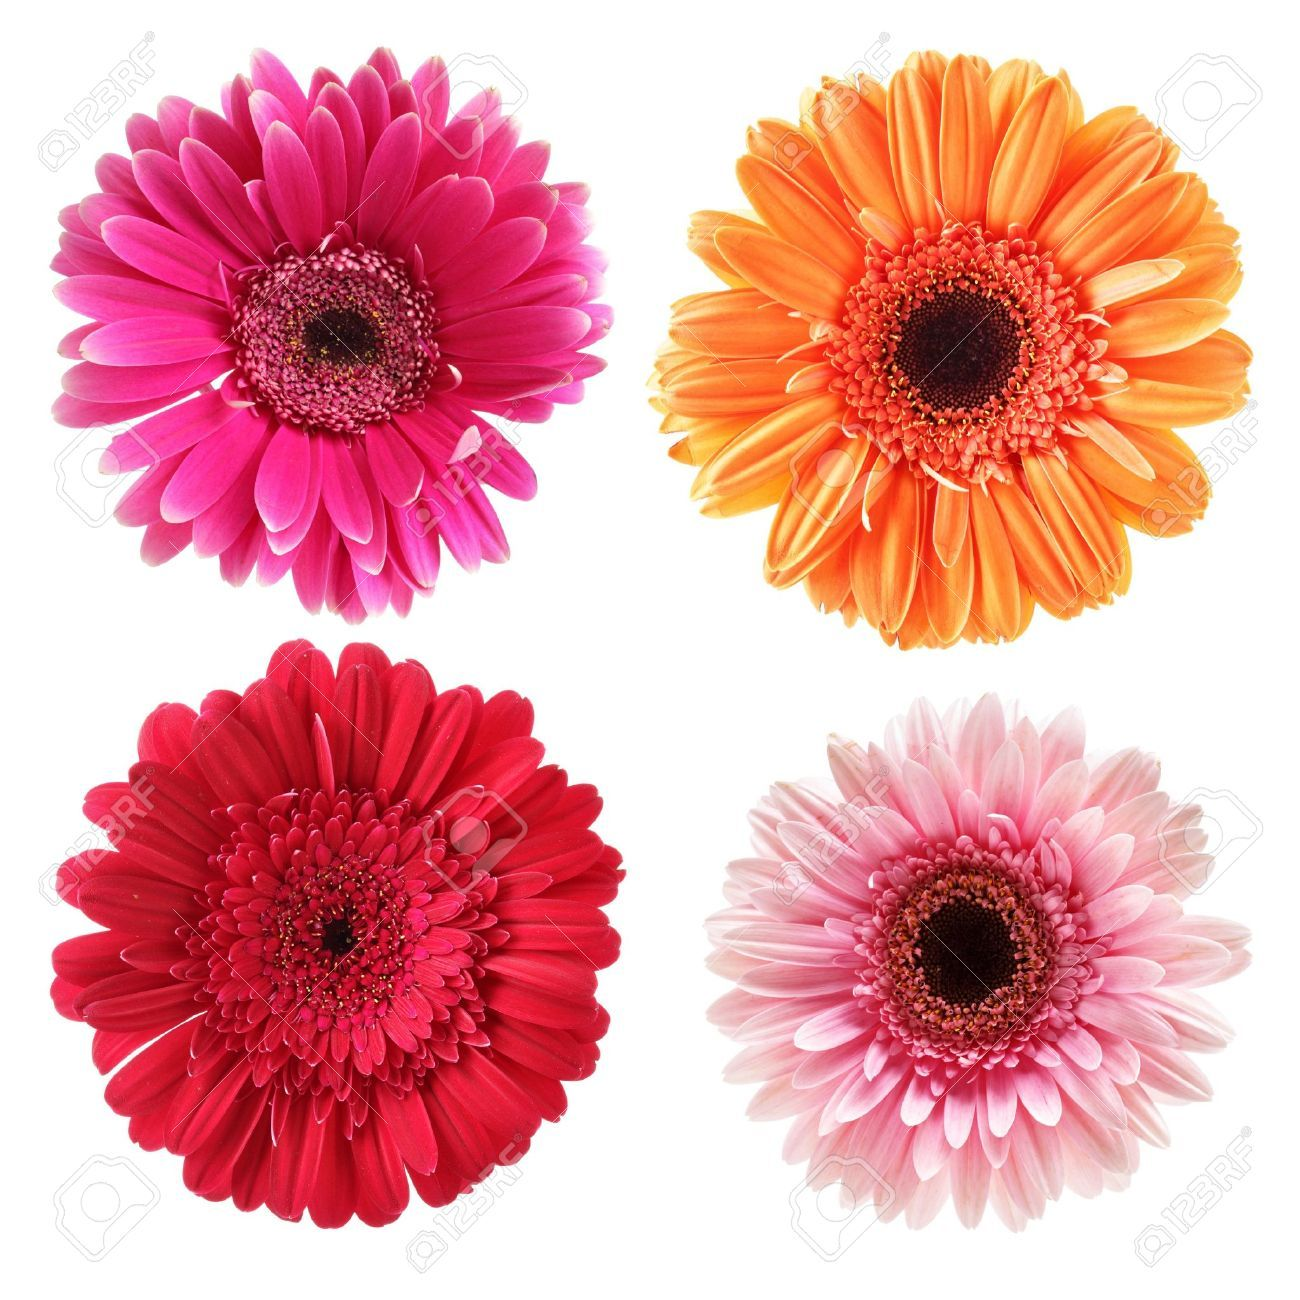 5224550 Daisy Flowers Isolated Over White Background Stock Photo Daisy Gerbera Pink Jpg Jpeg Image 1300 October Flowers Daisy Flower Paper Flowers